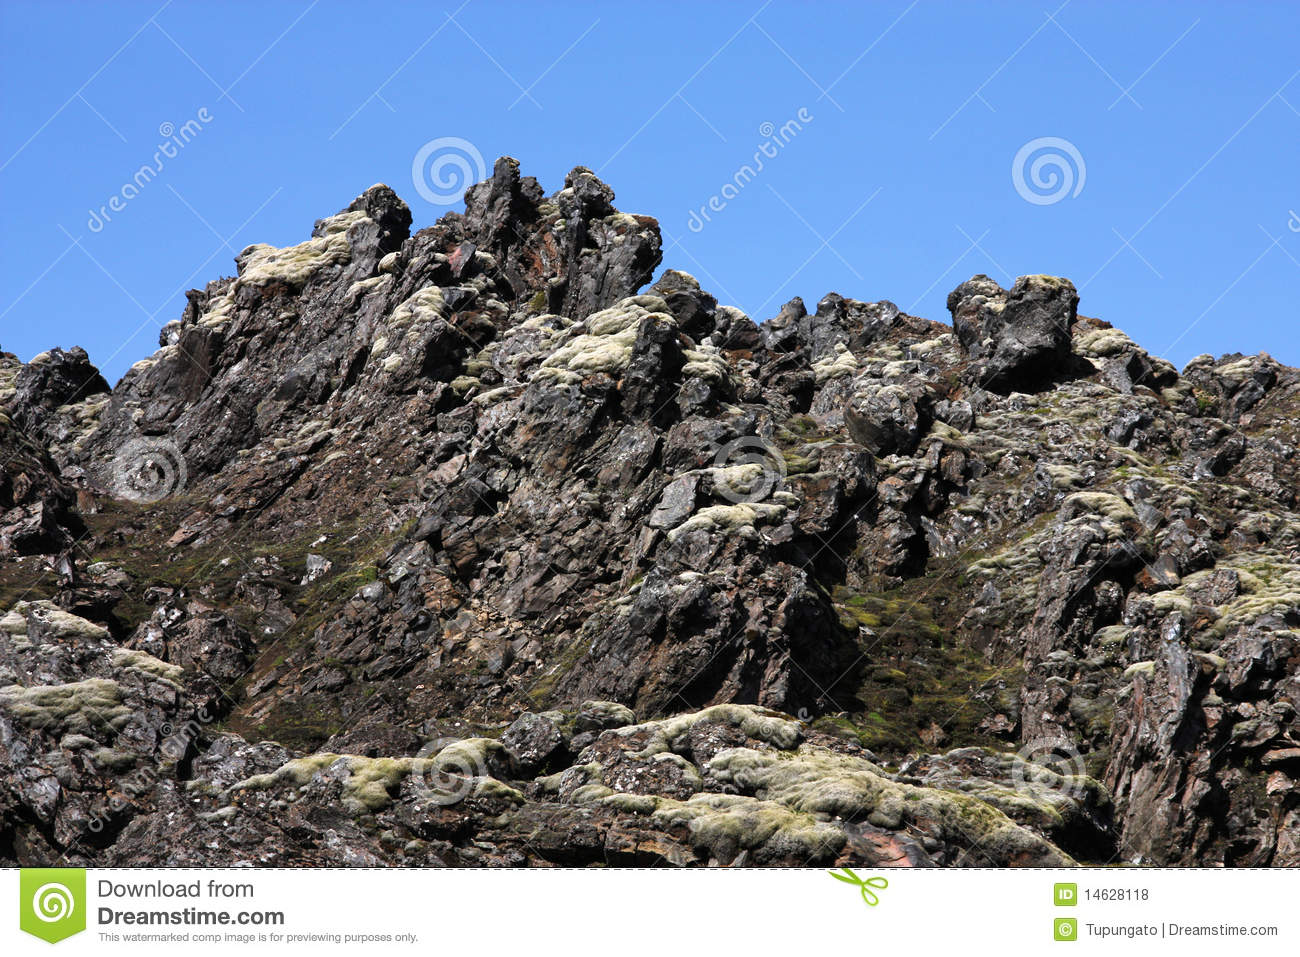 download Distributed Autonomous Robotic Systems 6 2007